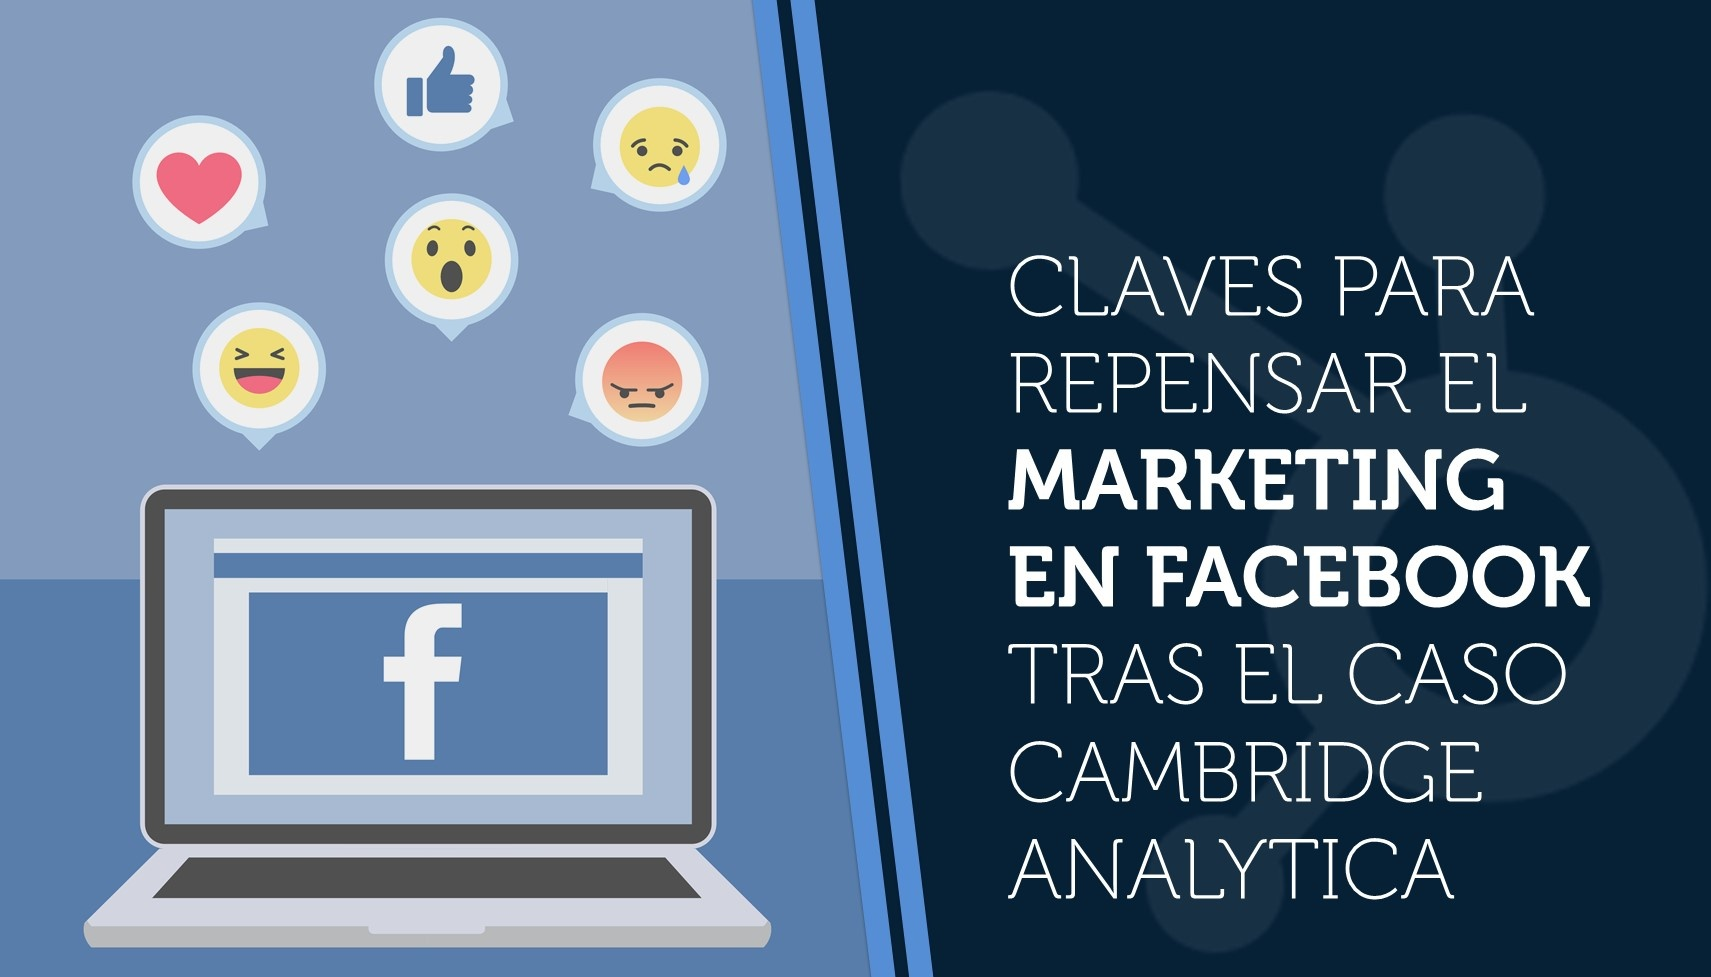 Claves para repensar el marketing en Facebook tras el caso Cambridge Analytica